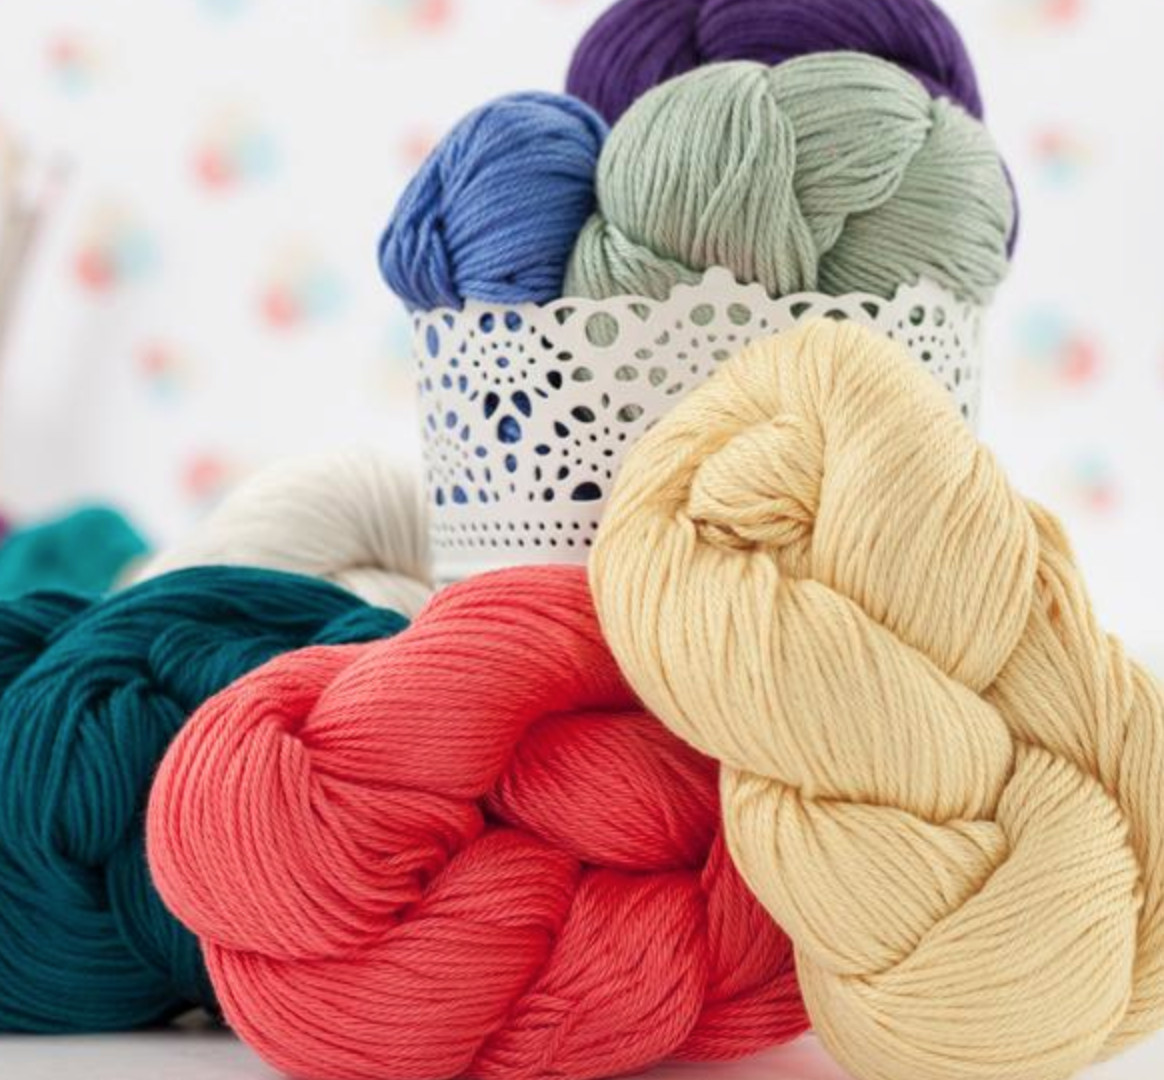 Best Of 10 Tips for Crocheting with Cotton Yarn Crochet Cotton Thread Of New 50 Pics Crochet Cotton Thread